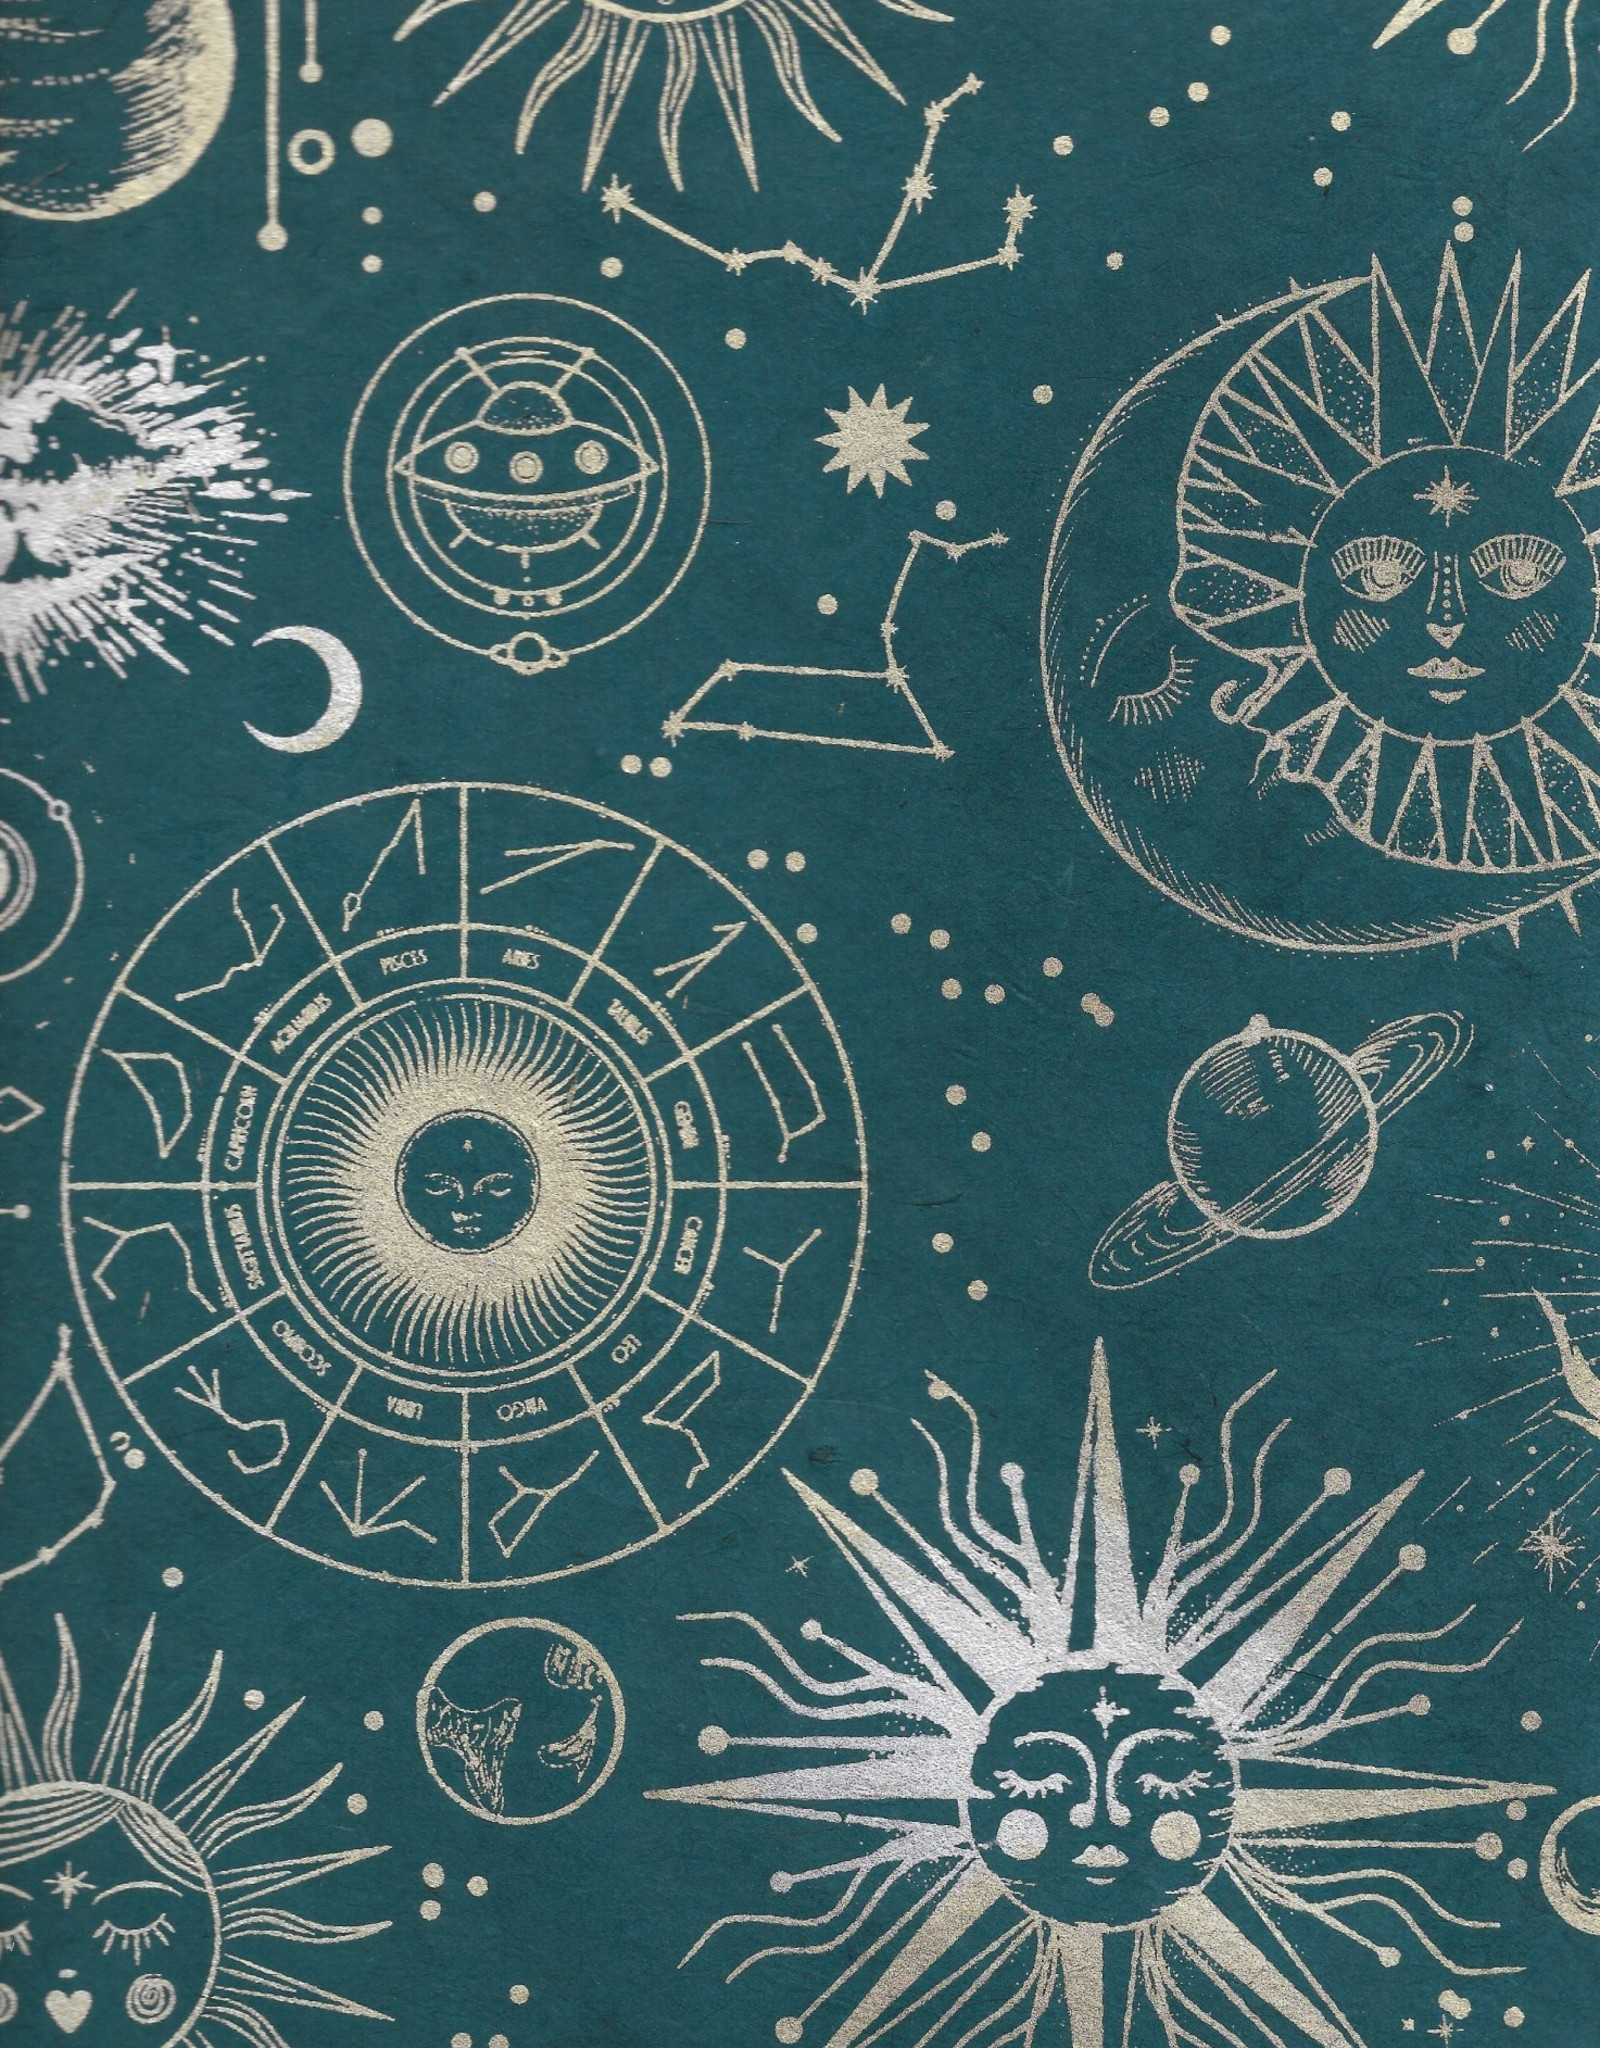 """Lokta Outer Space, Gold, Silver on Dark Teal, 20"""" x 30"""""""